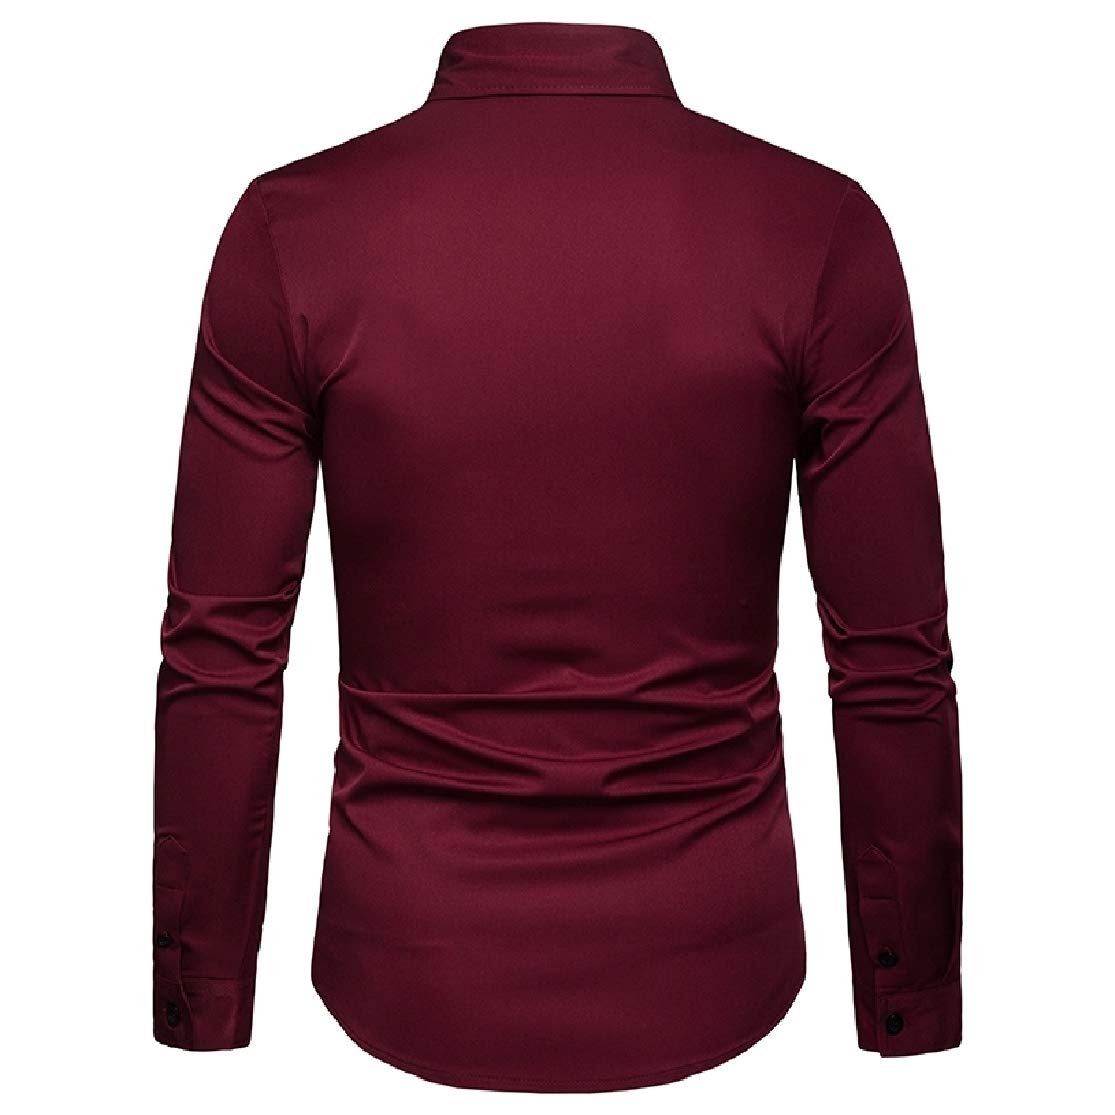 KLJR Men Solid Button Up Slim Fit Long Sleeve Casual Business Shirts